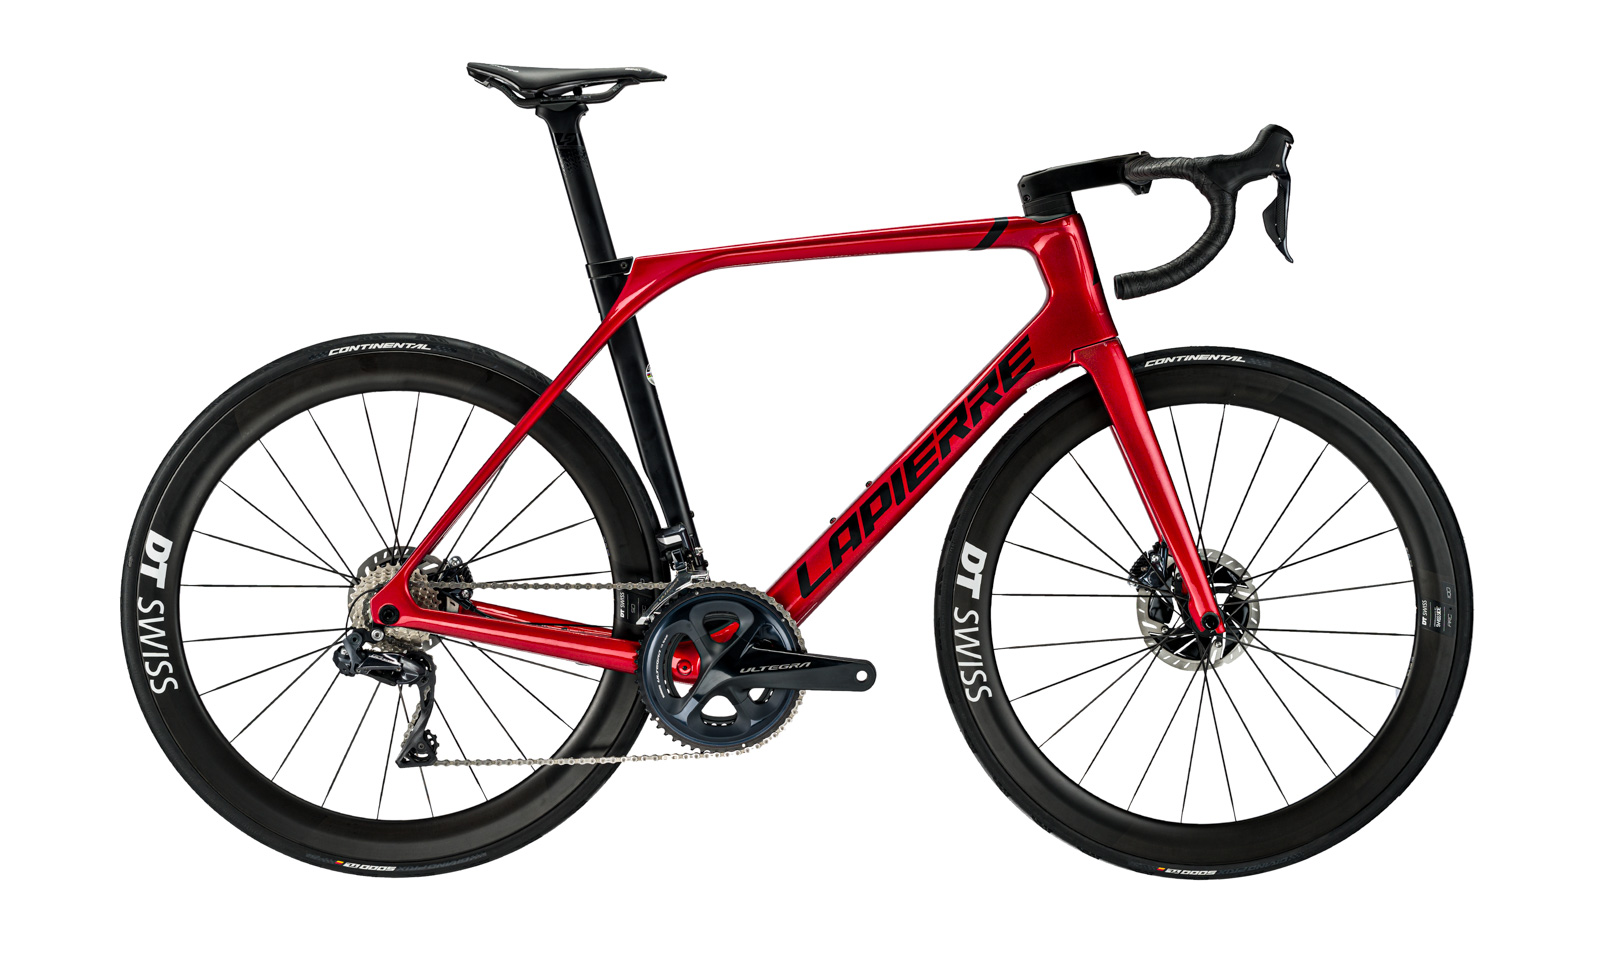 Lapierre unveils faster, stiffer, and comfier Aircode DRS aero road bike